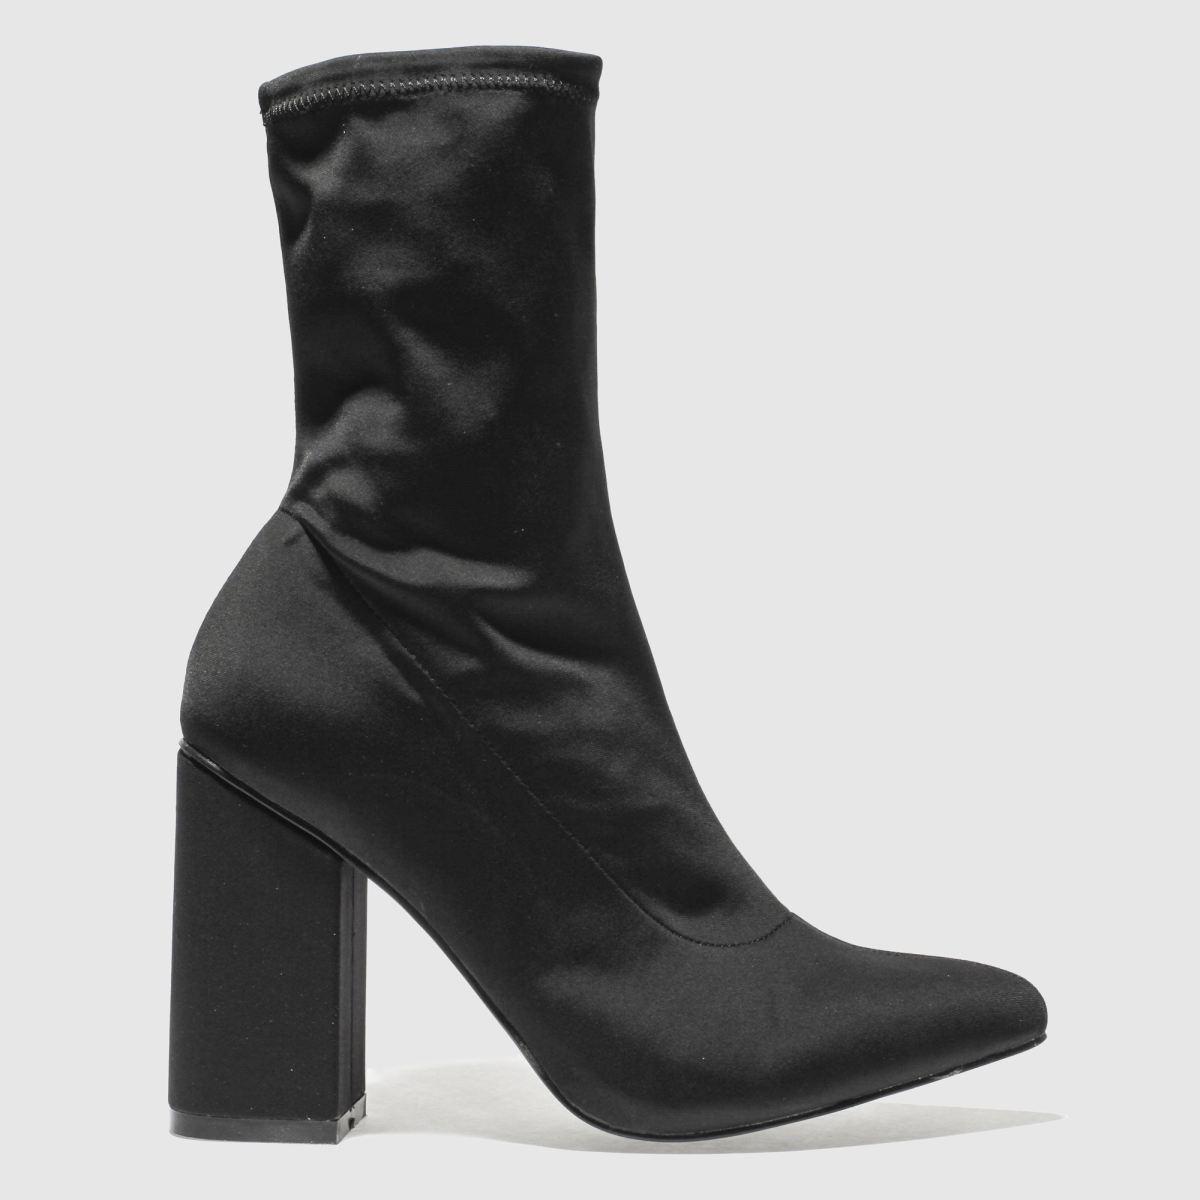 missguided Missguided Black Block Heel Sock Boots